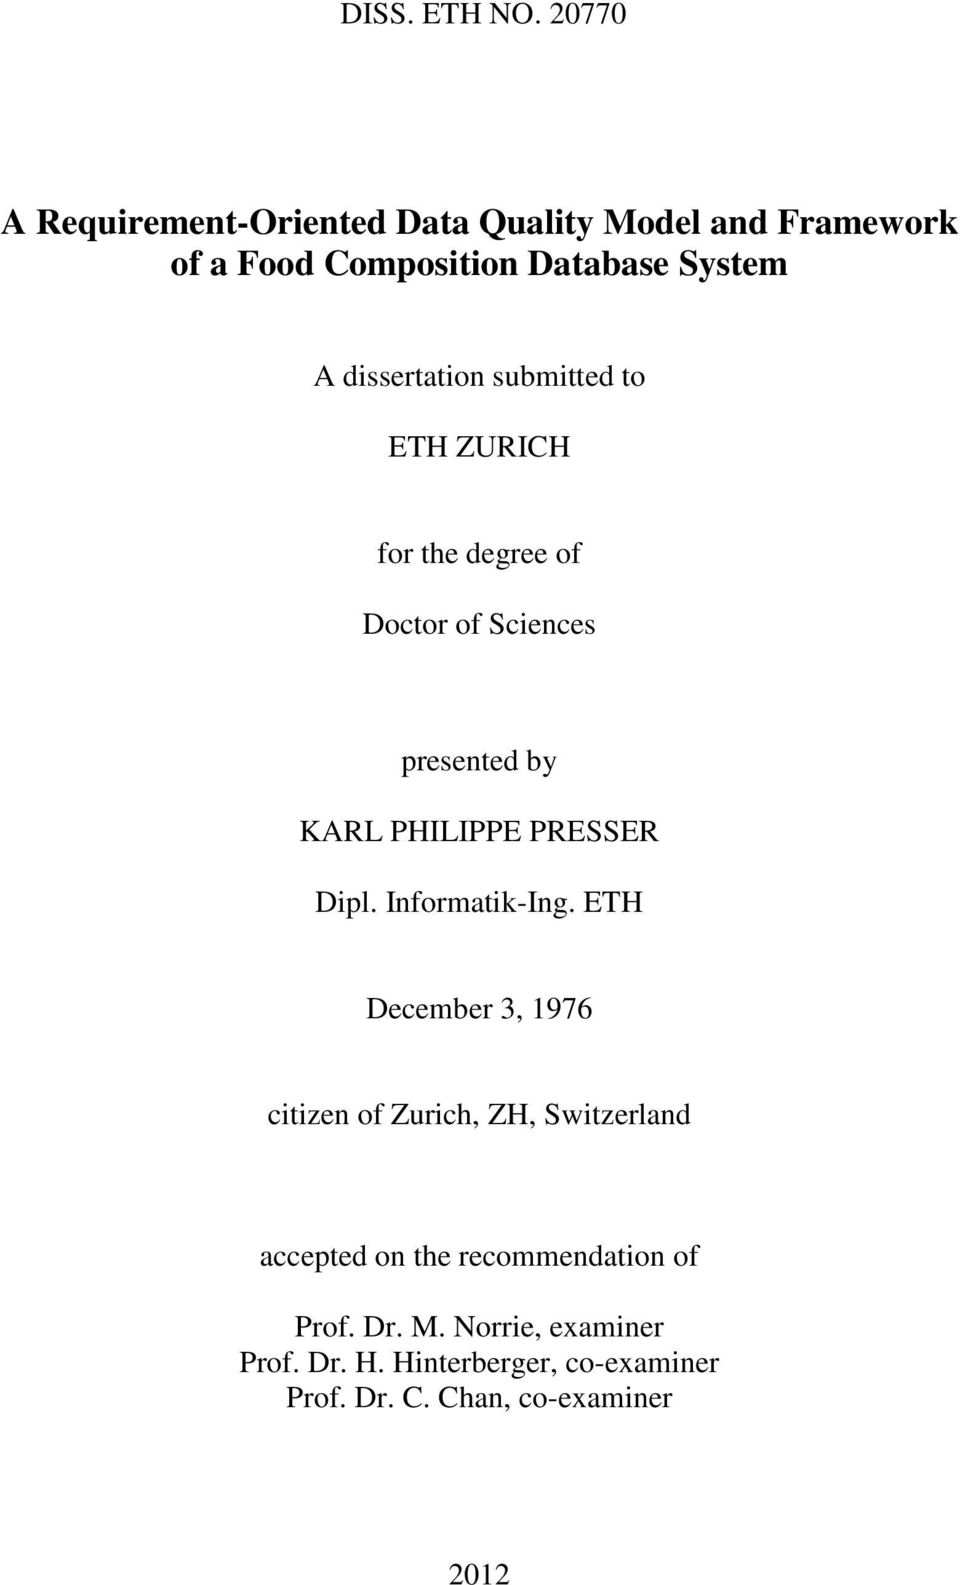 dissertation submitted to ETH ZURICH for the degree of Doctor of Sciences presented by KARL PHILIPPE PRESSER